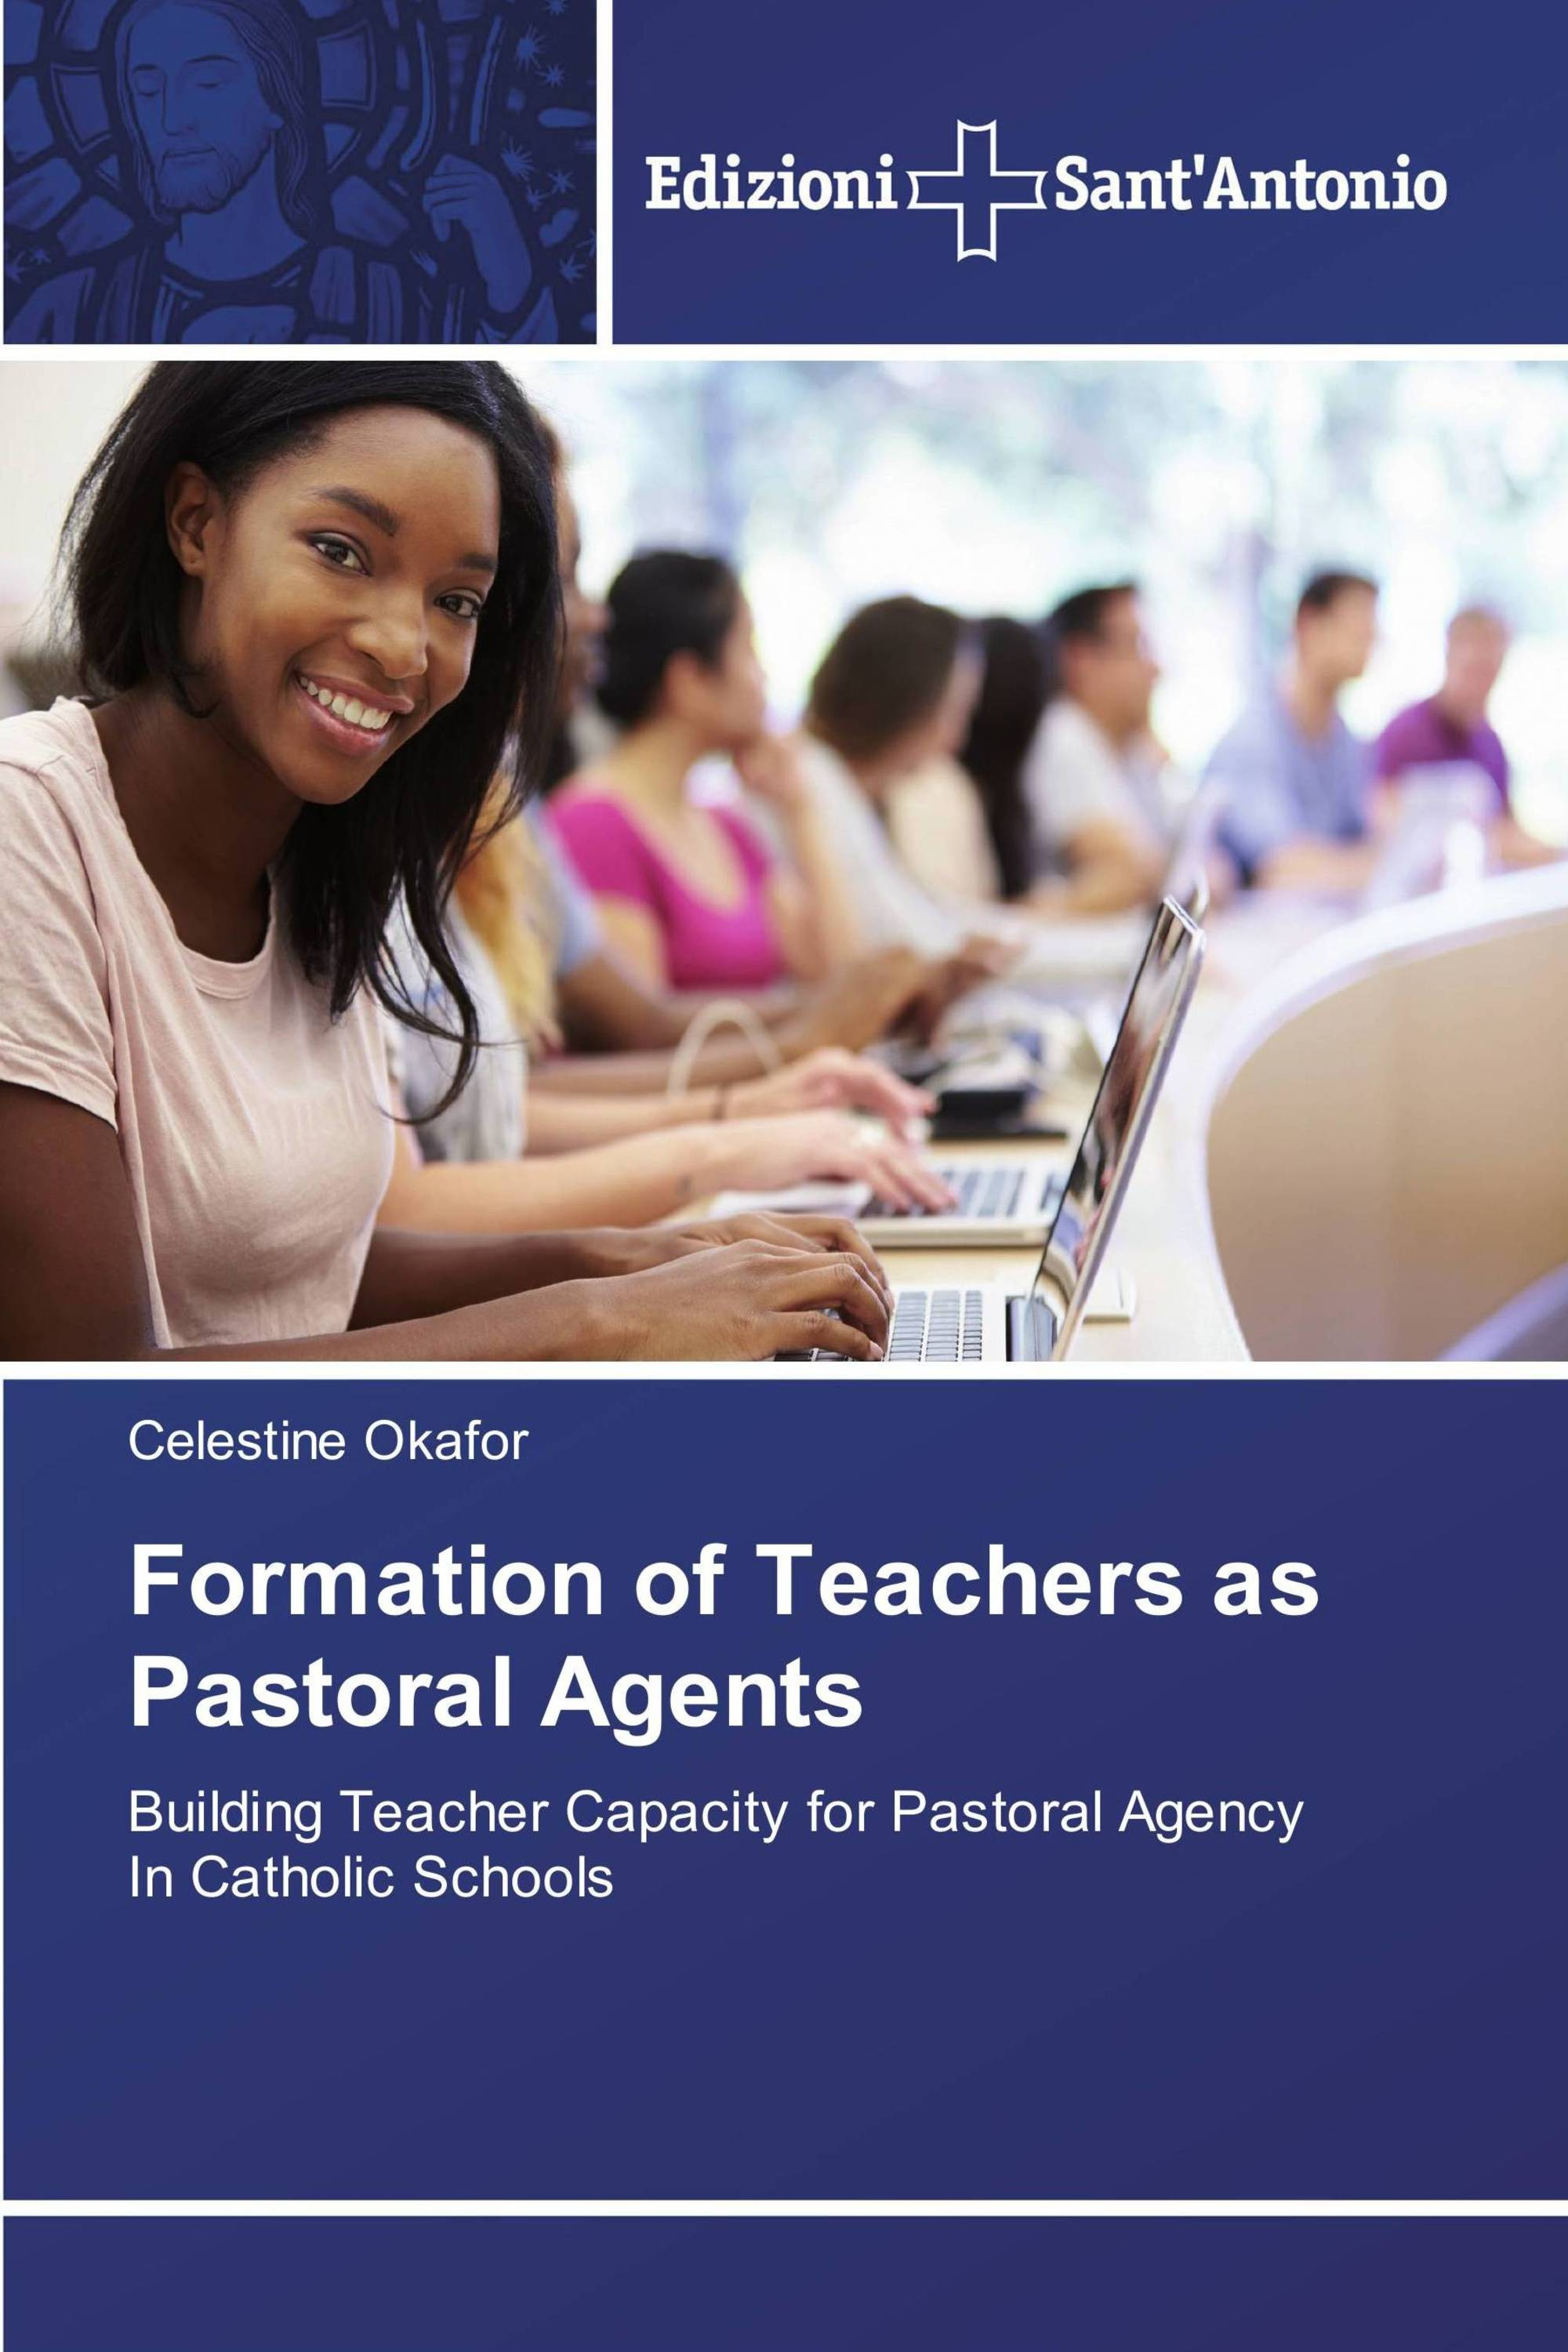 Formation of Teachers as Pastoral Agents